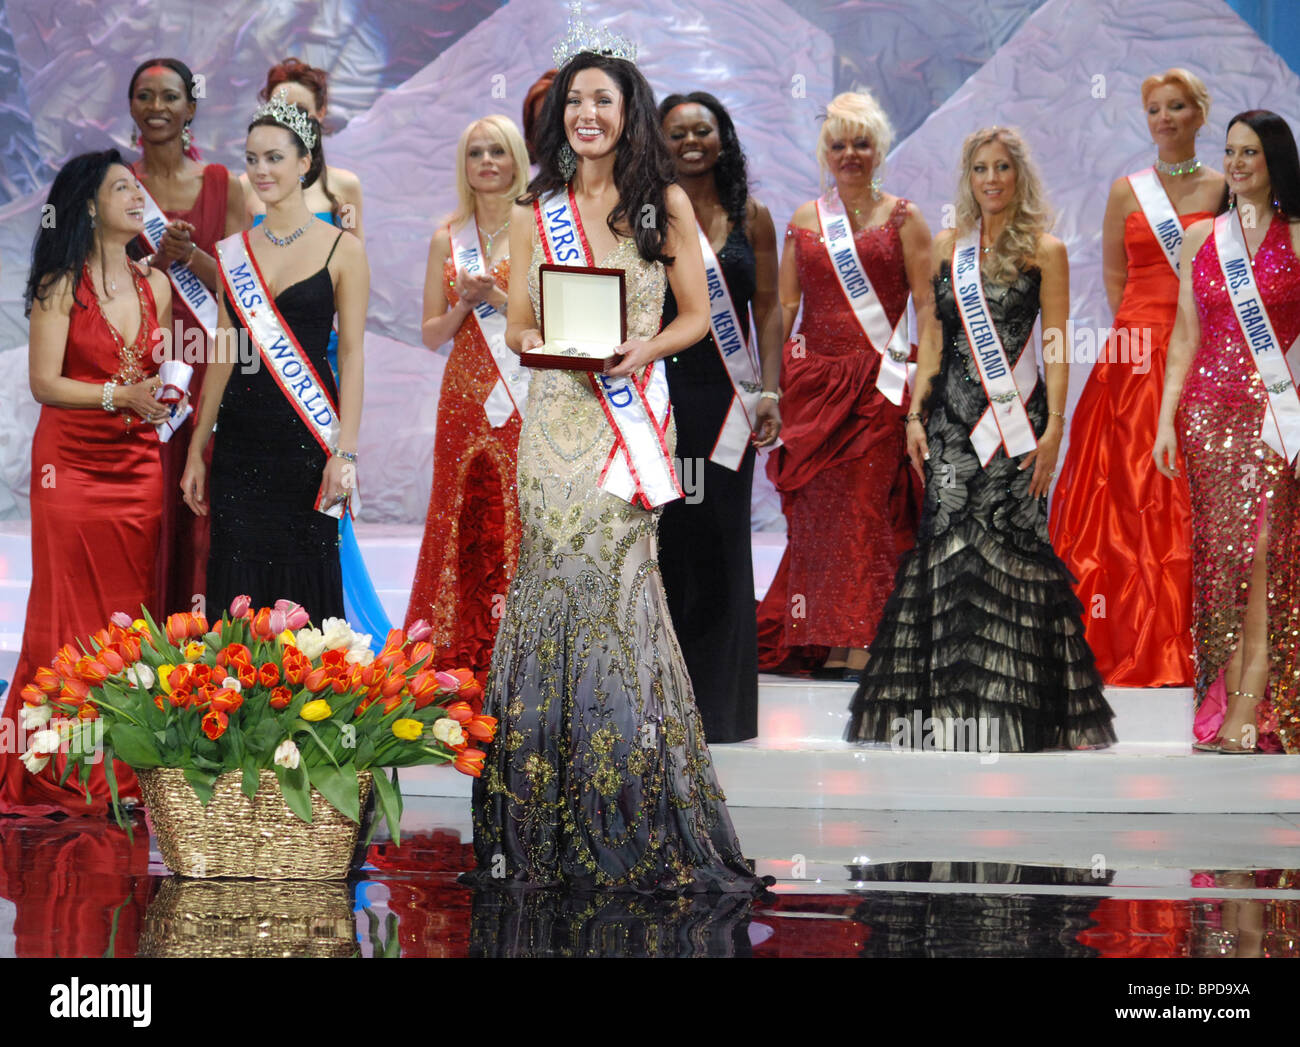 Mrs. World 2007 beauty pageant ended in Sochi - Stock Image